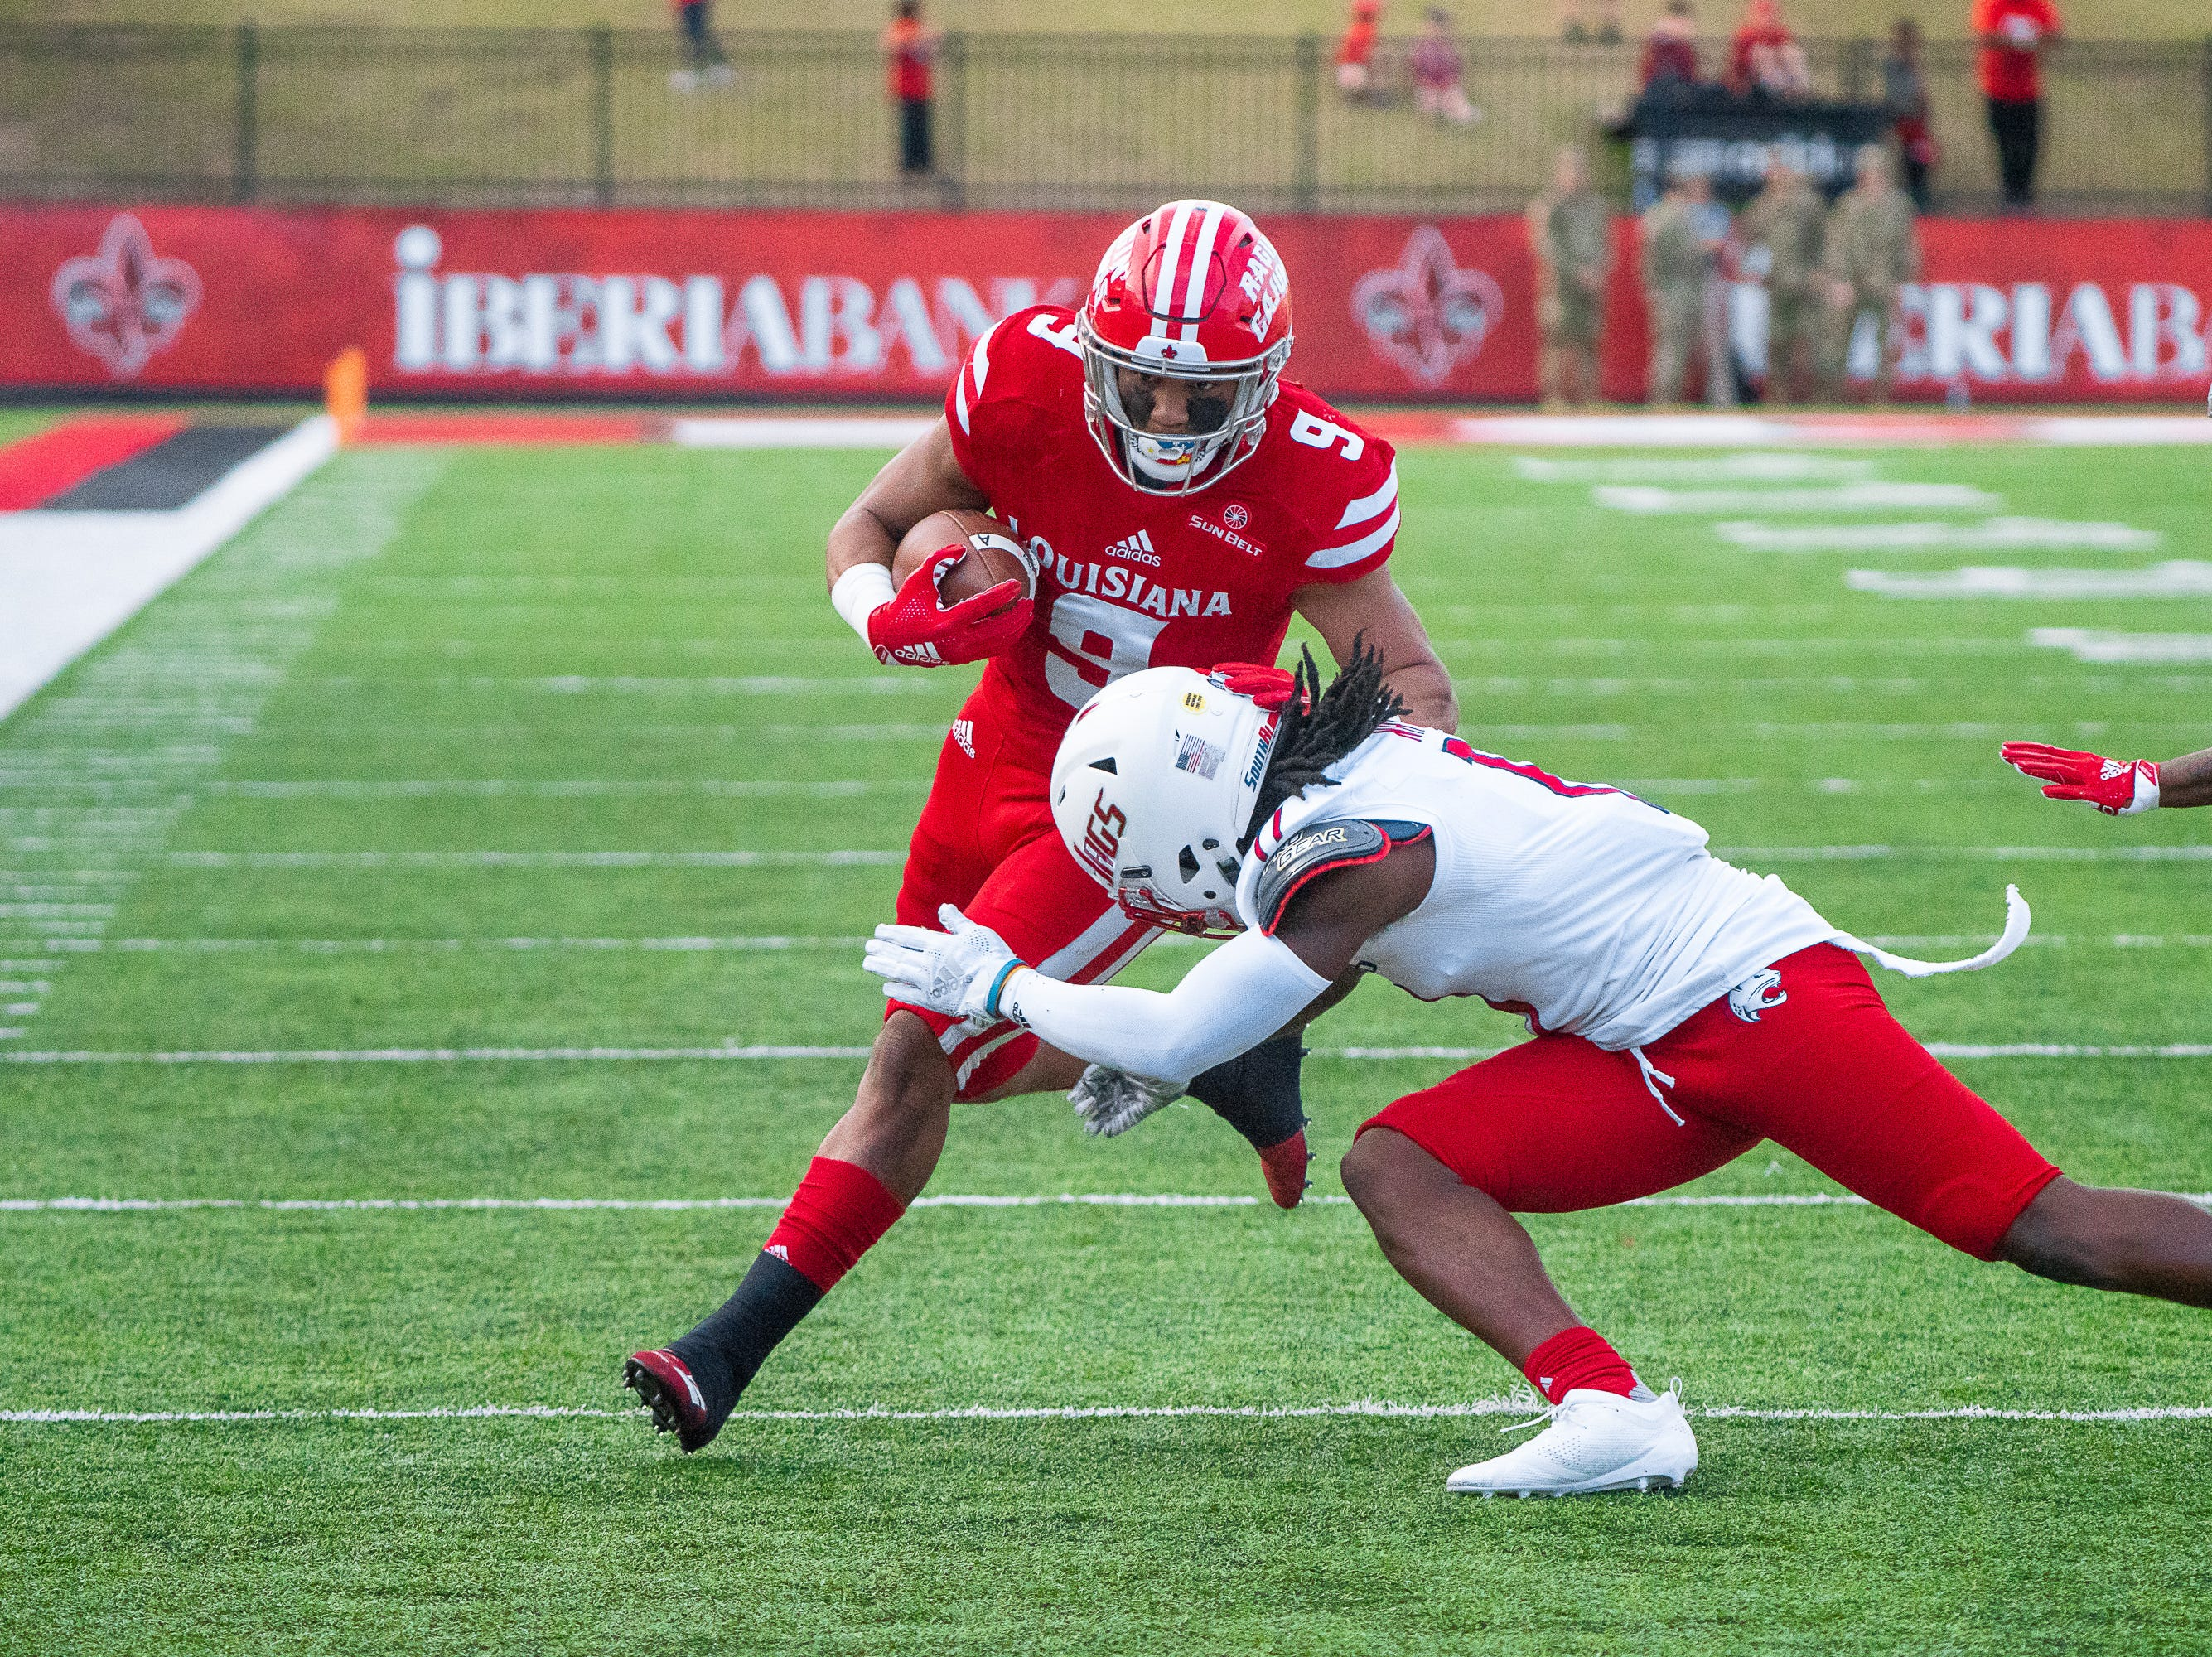 UL's Trey Ragas charges through a defender while running the ball as the Ragin' Cajuns play against the South Alabama Jaguars at Cajun Field on November 17, 2018.